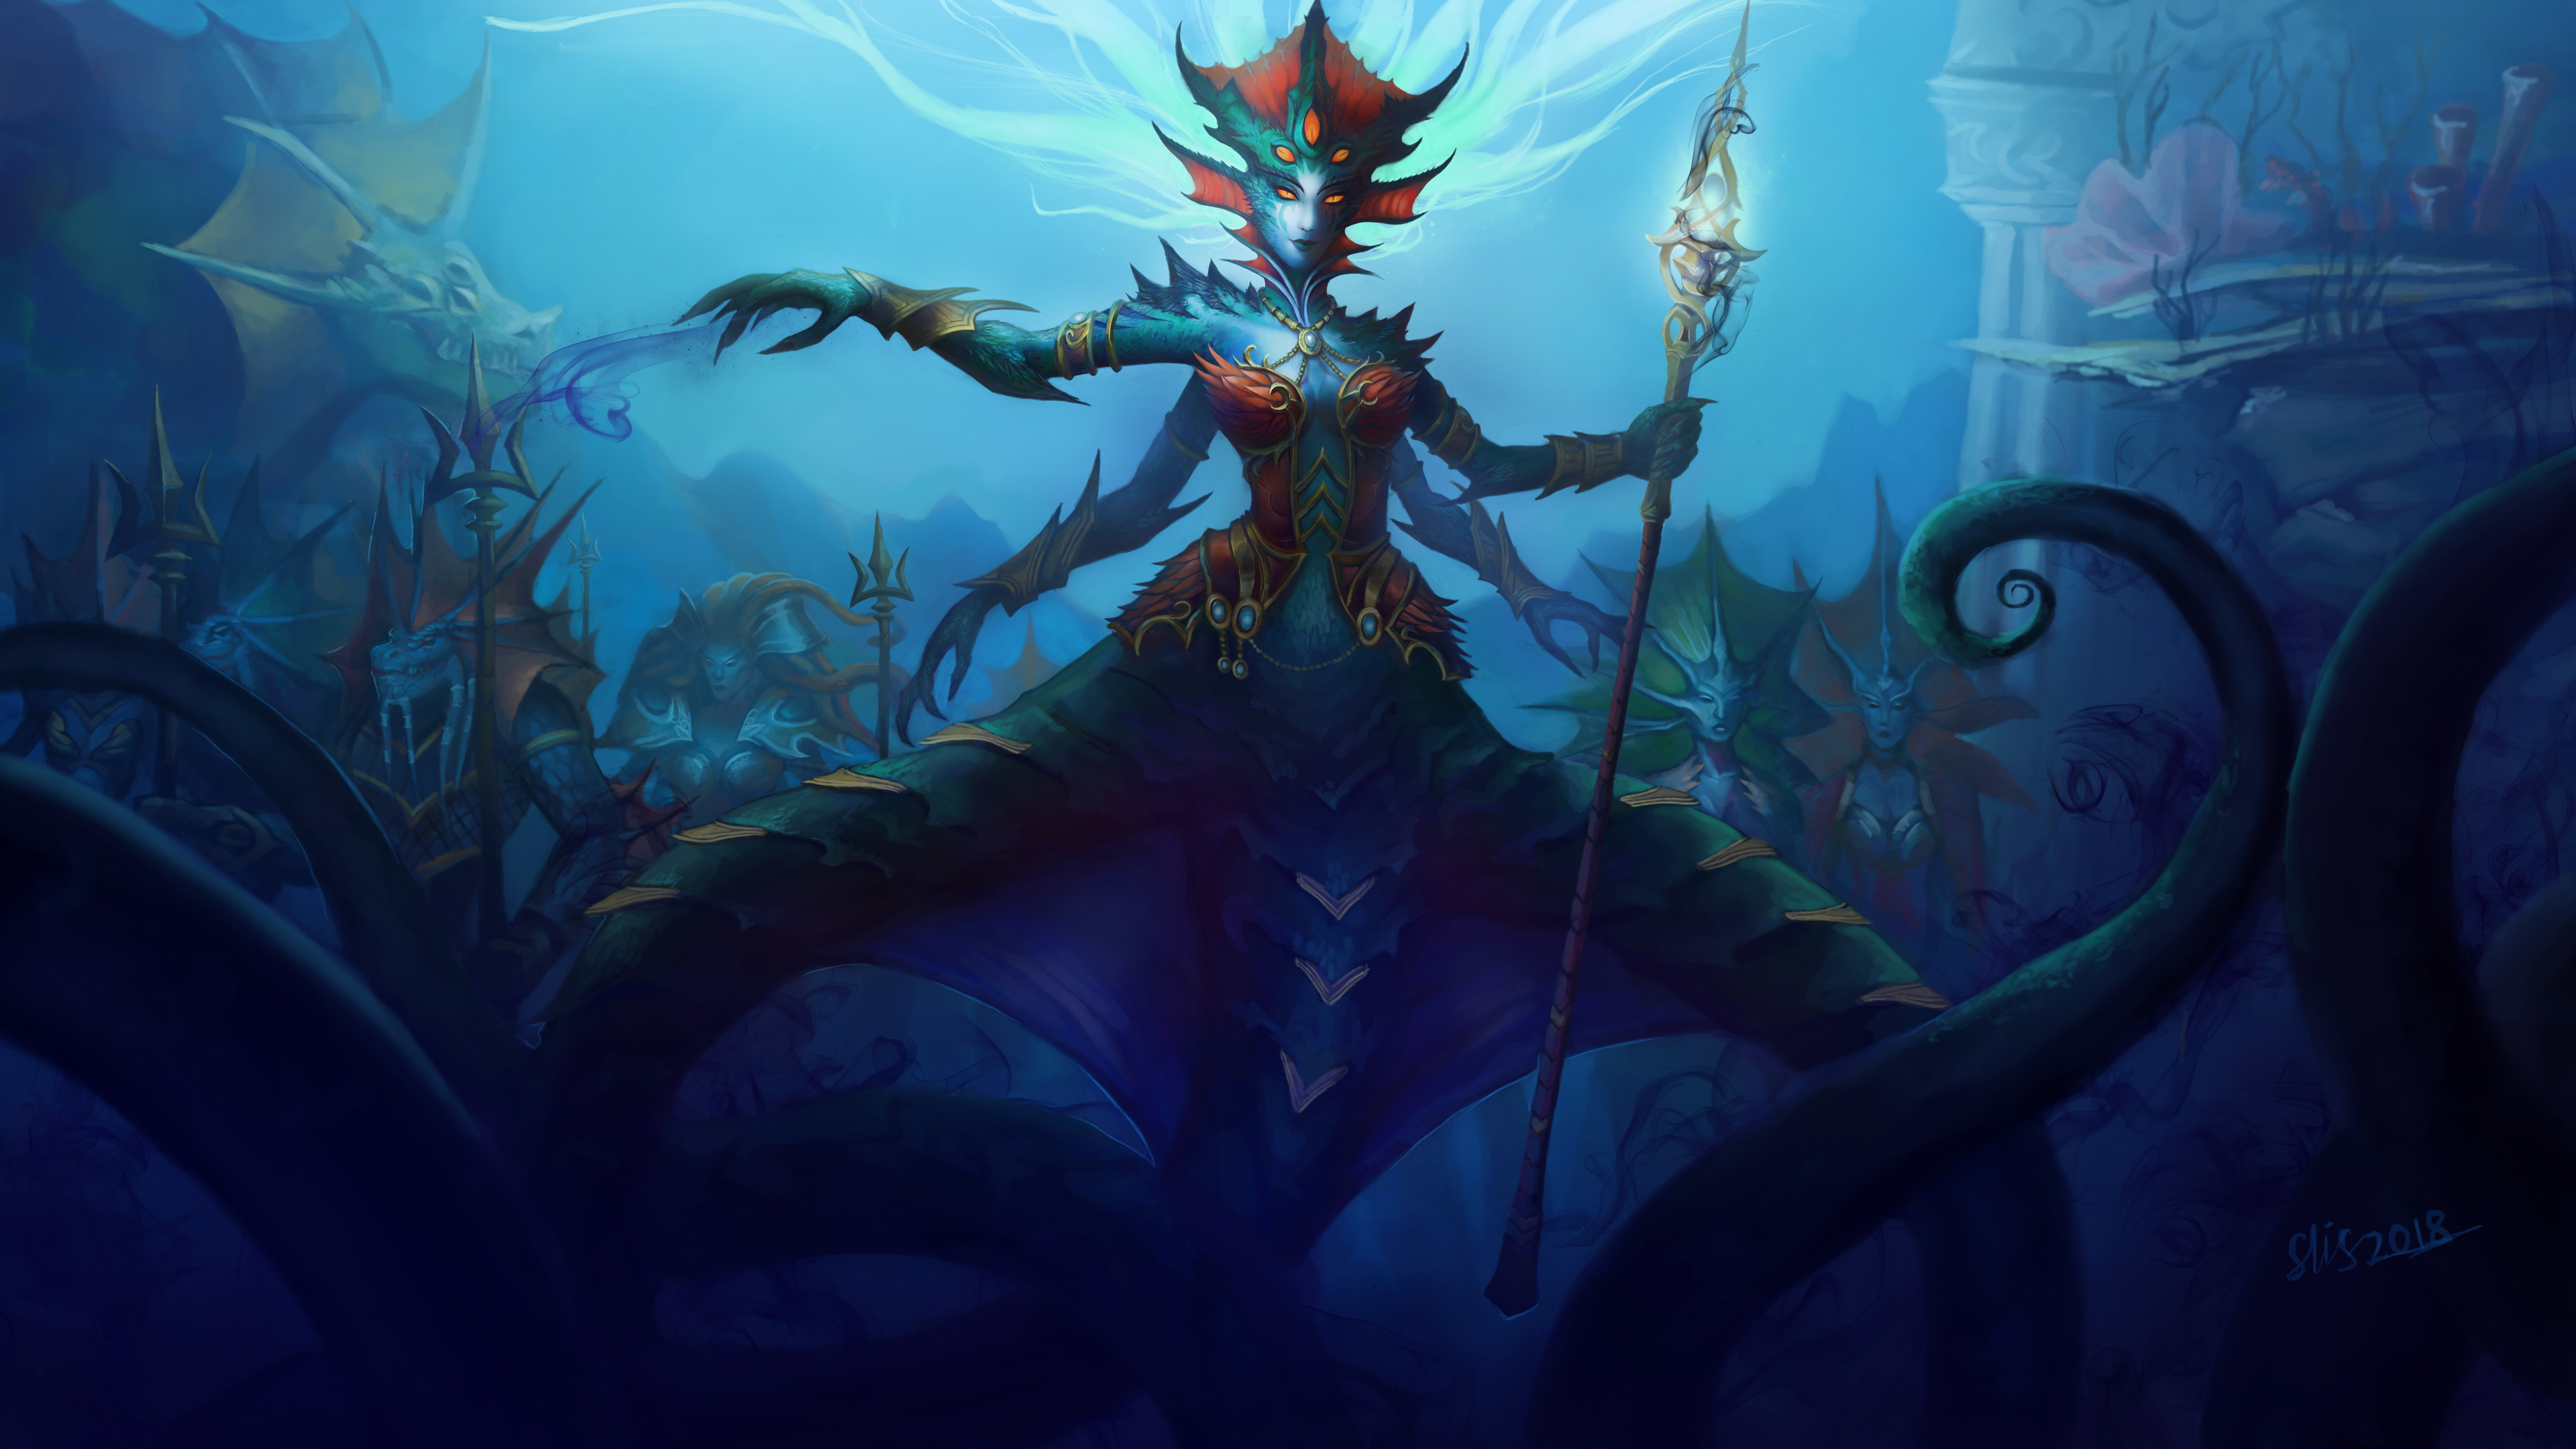 Wallpaper 4k World Of Warcraft Queen Azshara 4k 4k Wallpapers 5k